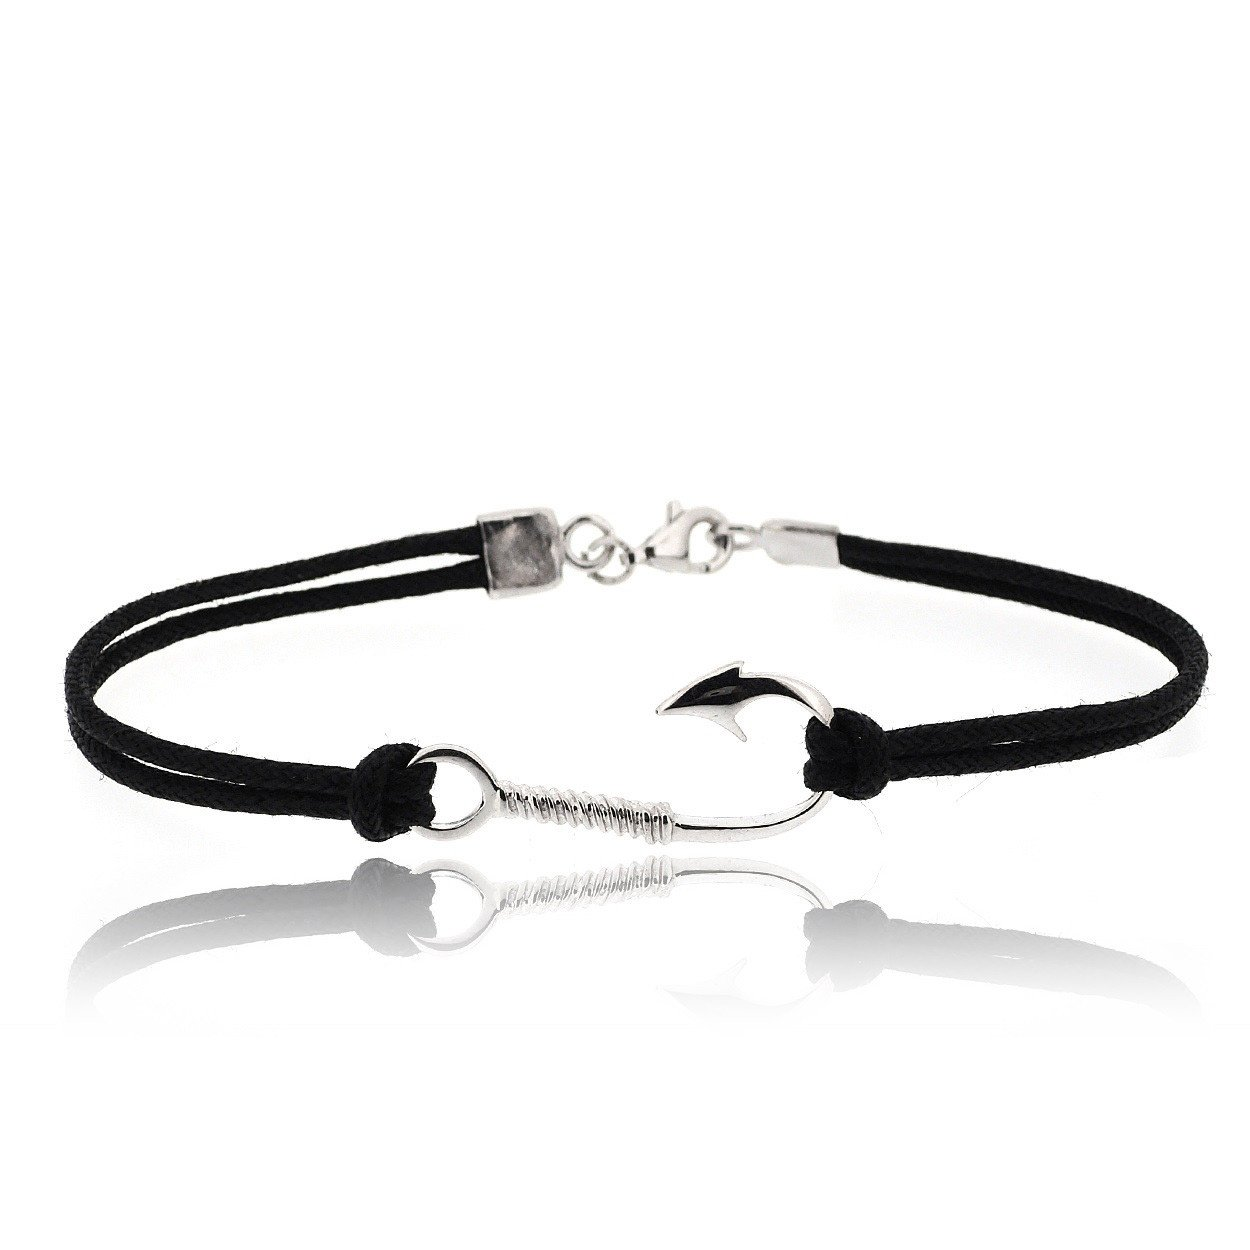 Sovats Hook 925 Sterling Silver Rhodium Plated Charms With Black Cord Bracelet For Men - Simple, Stylish & Trendy Nickel Free Bracelet Size 7.5 East India 795_eb0142._us (7.5)